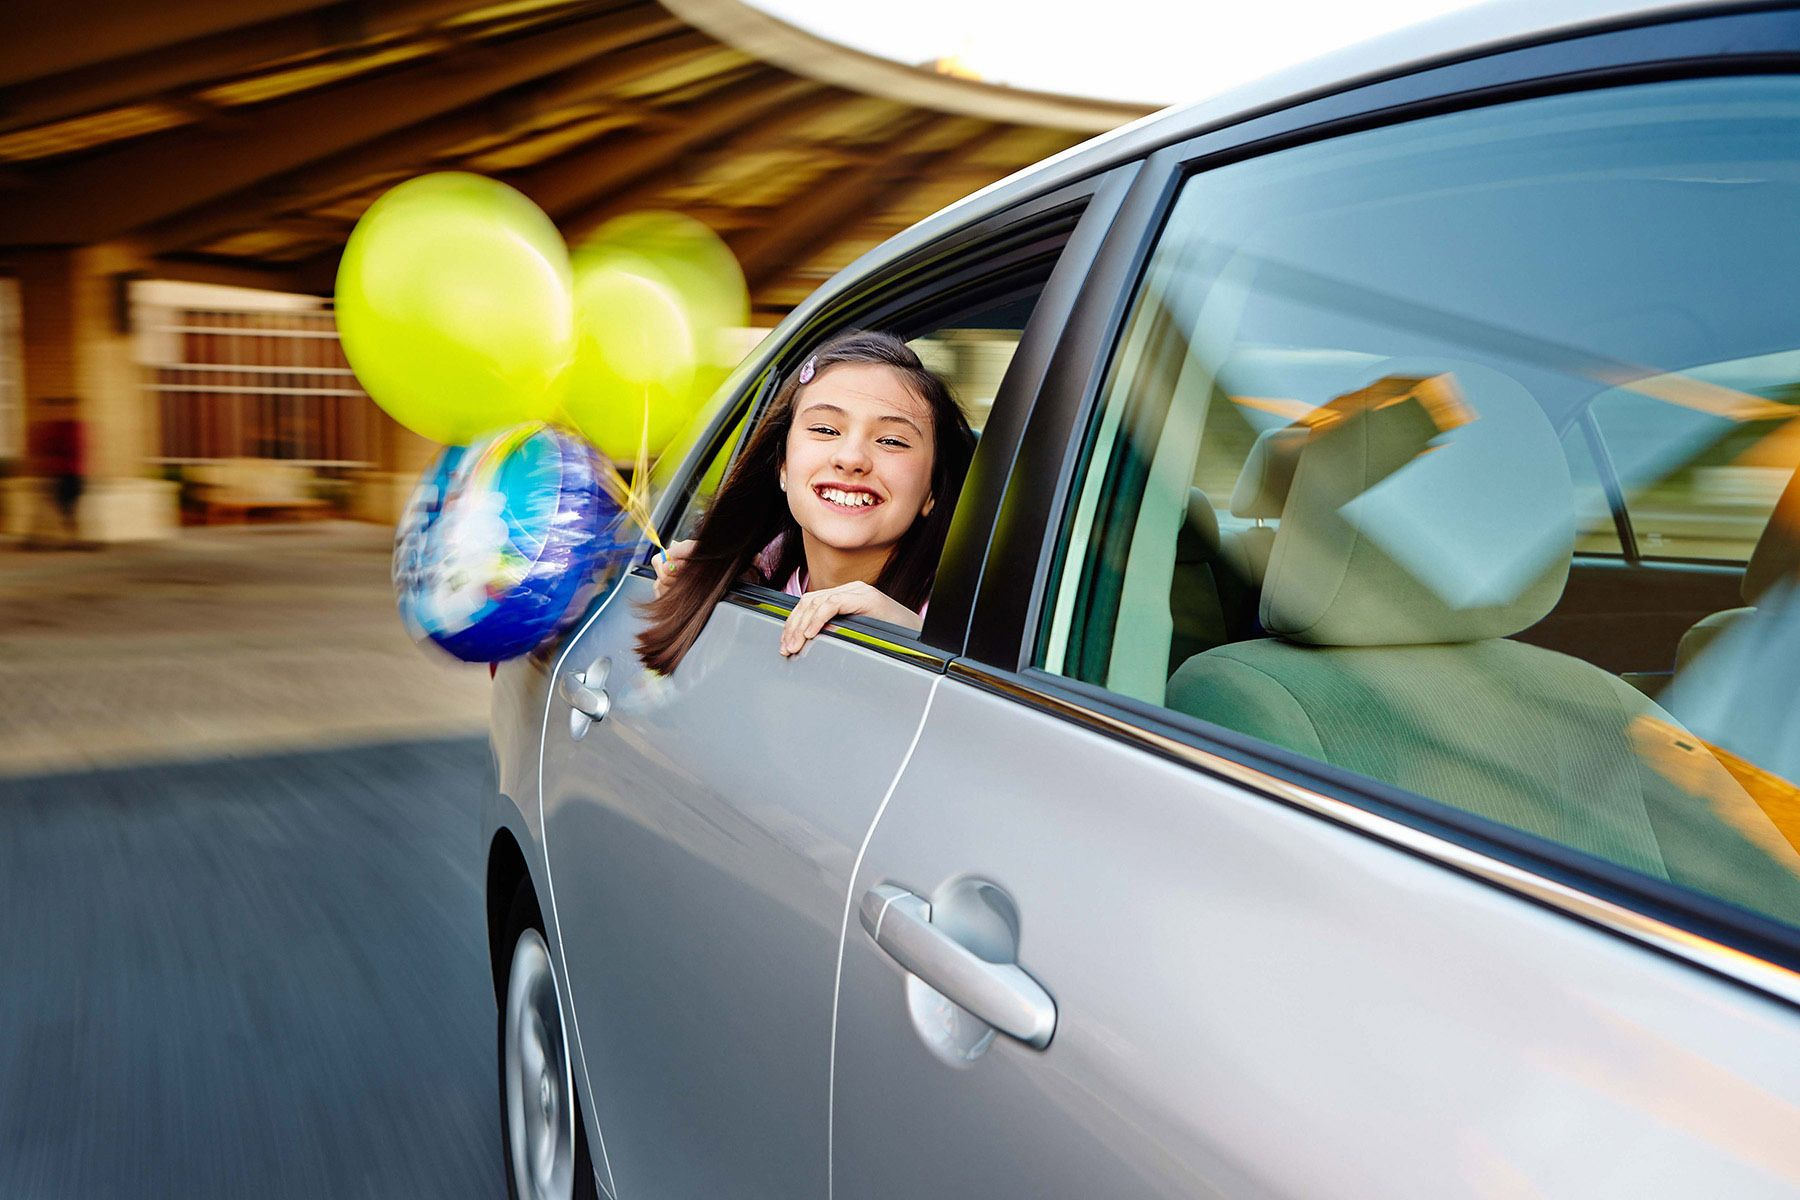 1lifestyle_location_girl_car_balloons_hospital_recovery